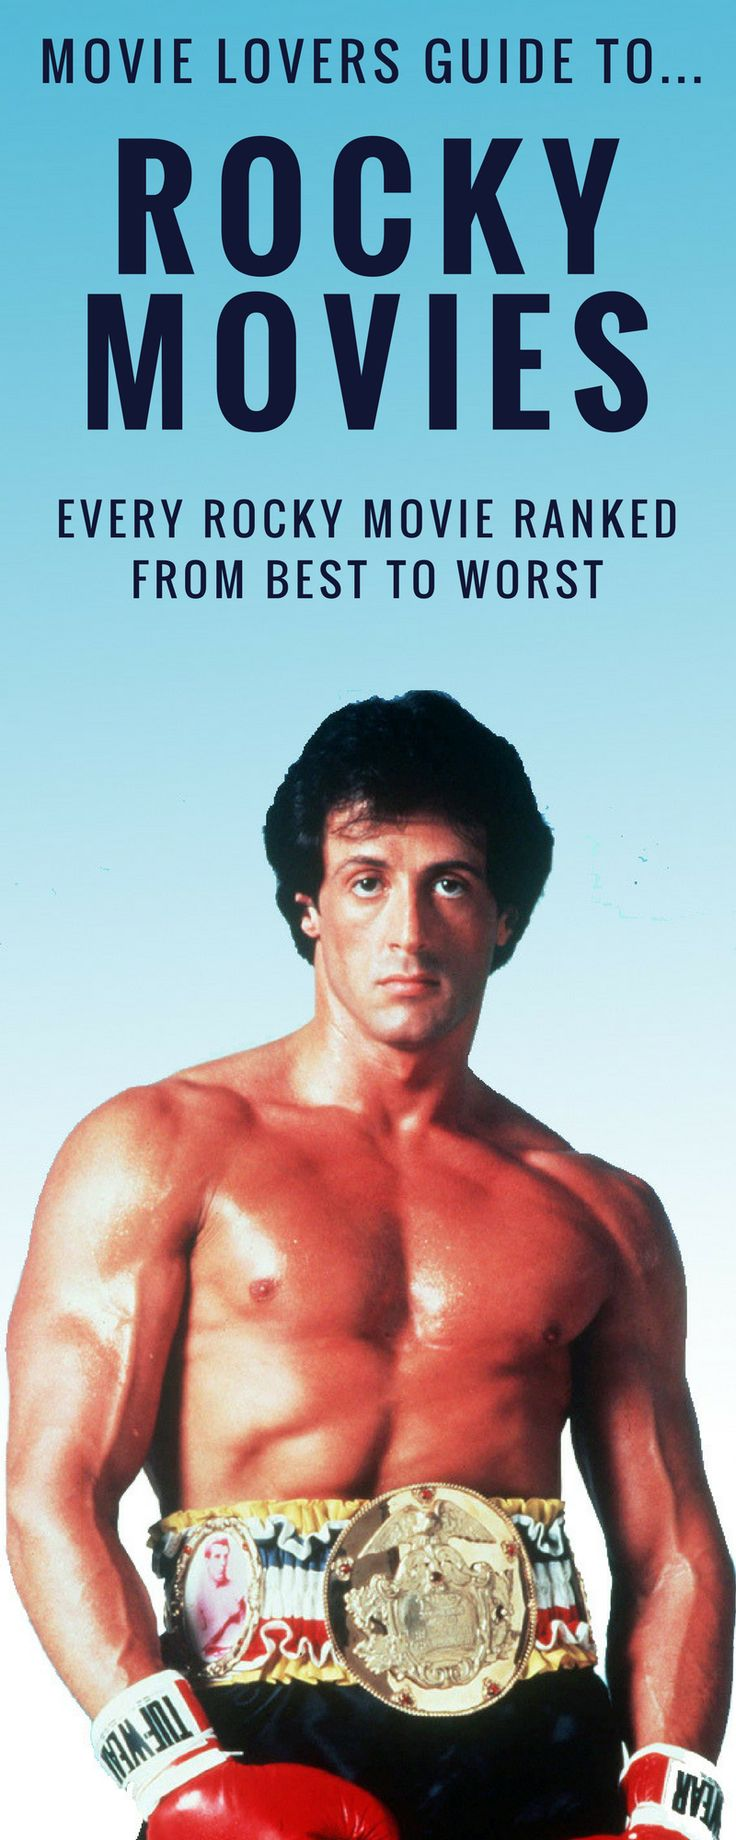 All the Rocky movies ranked from best to worst